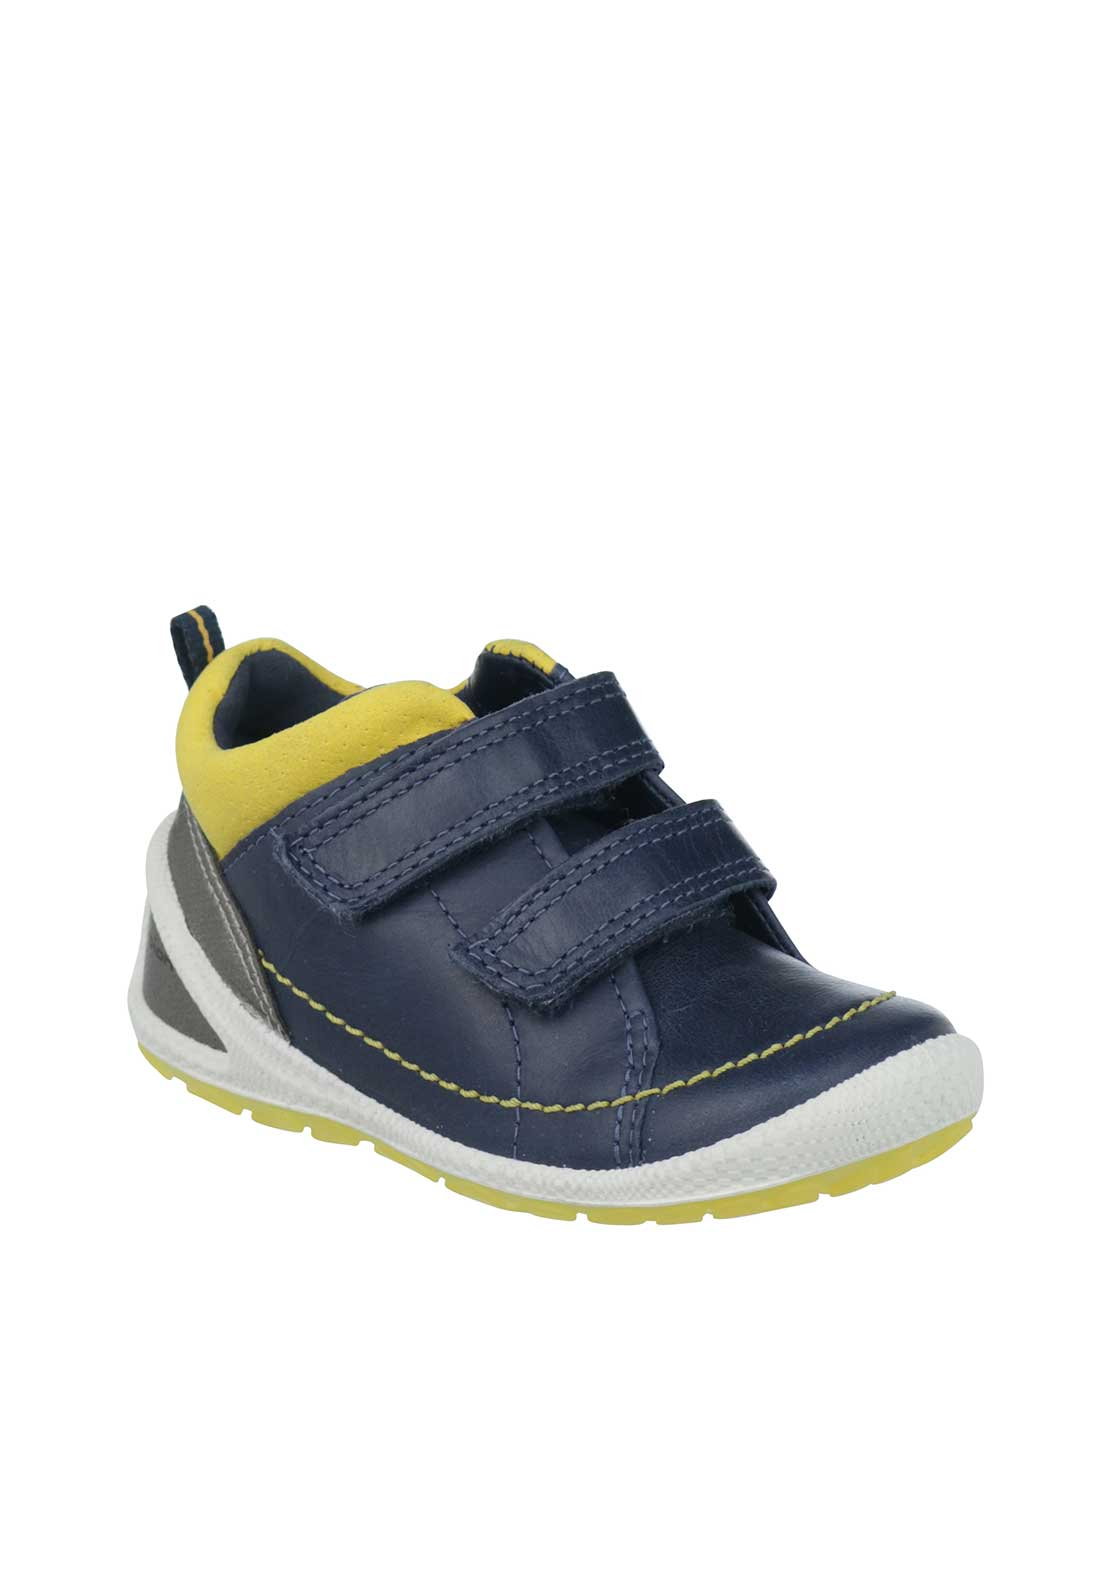 Ecco Baby Boys Leather Velcro Boots, Navy